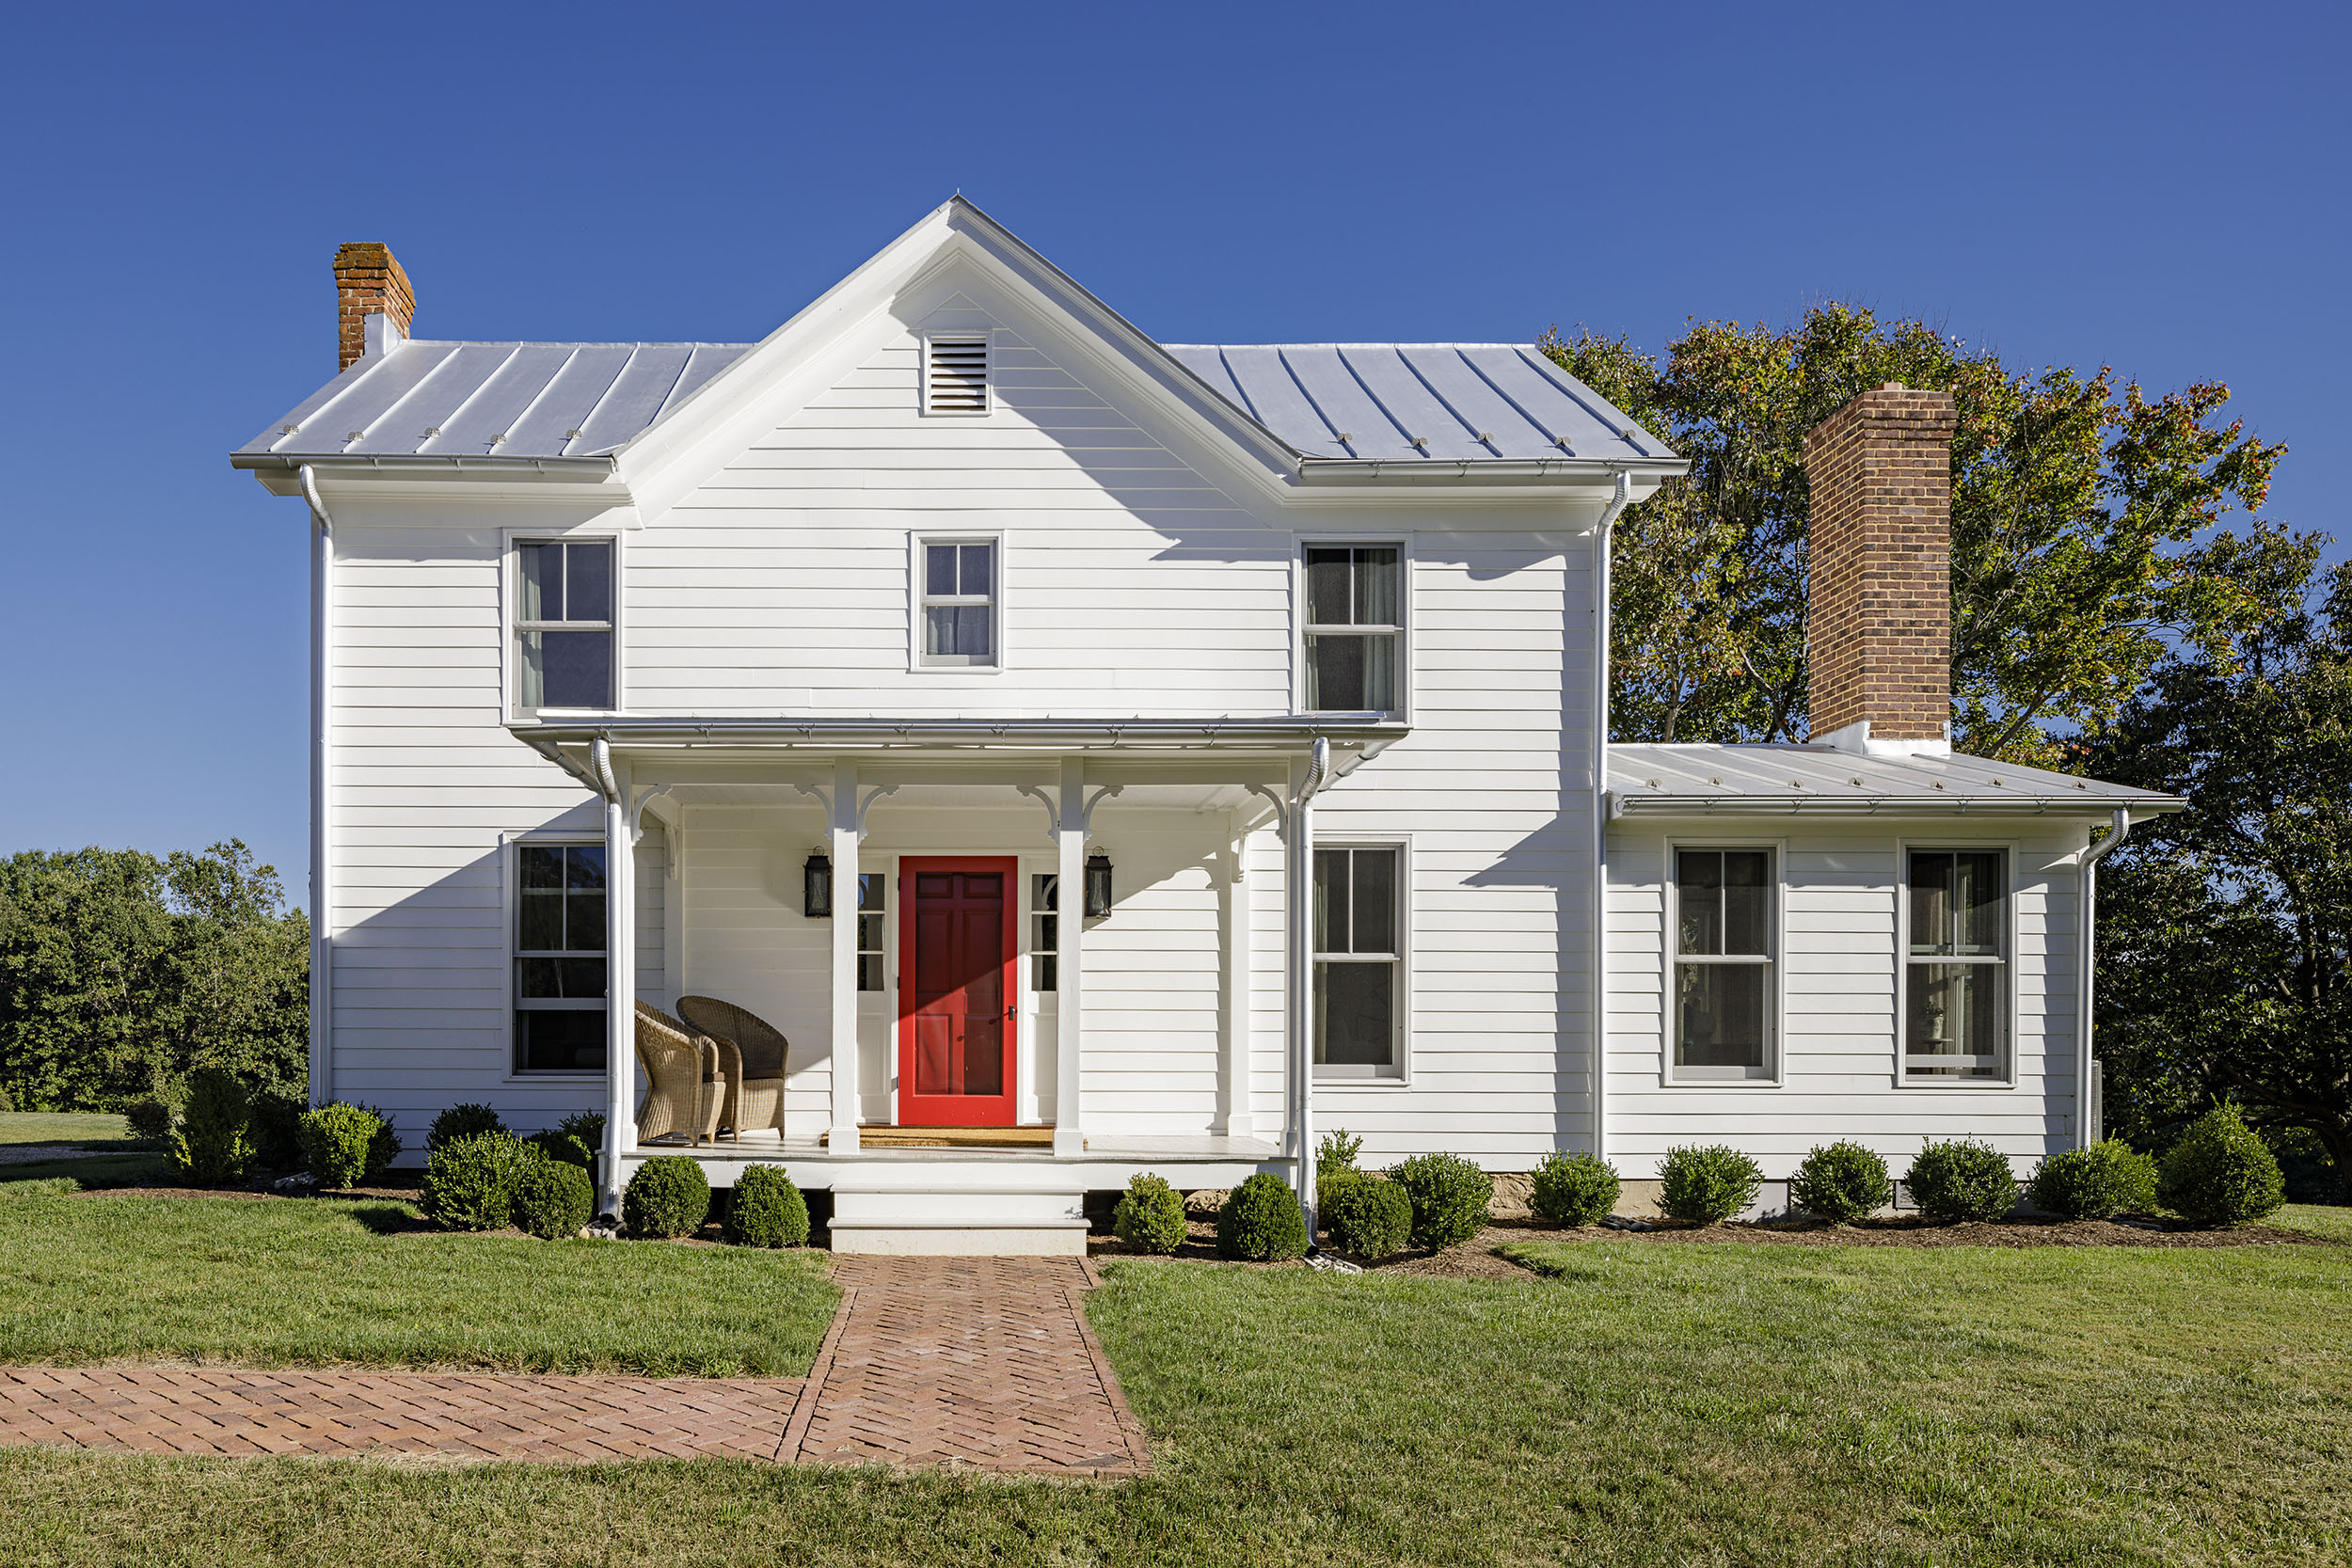 virginia_farmhouse_modern-front_brick-walkway_Grounded.jpg